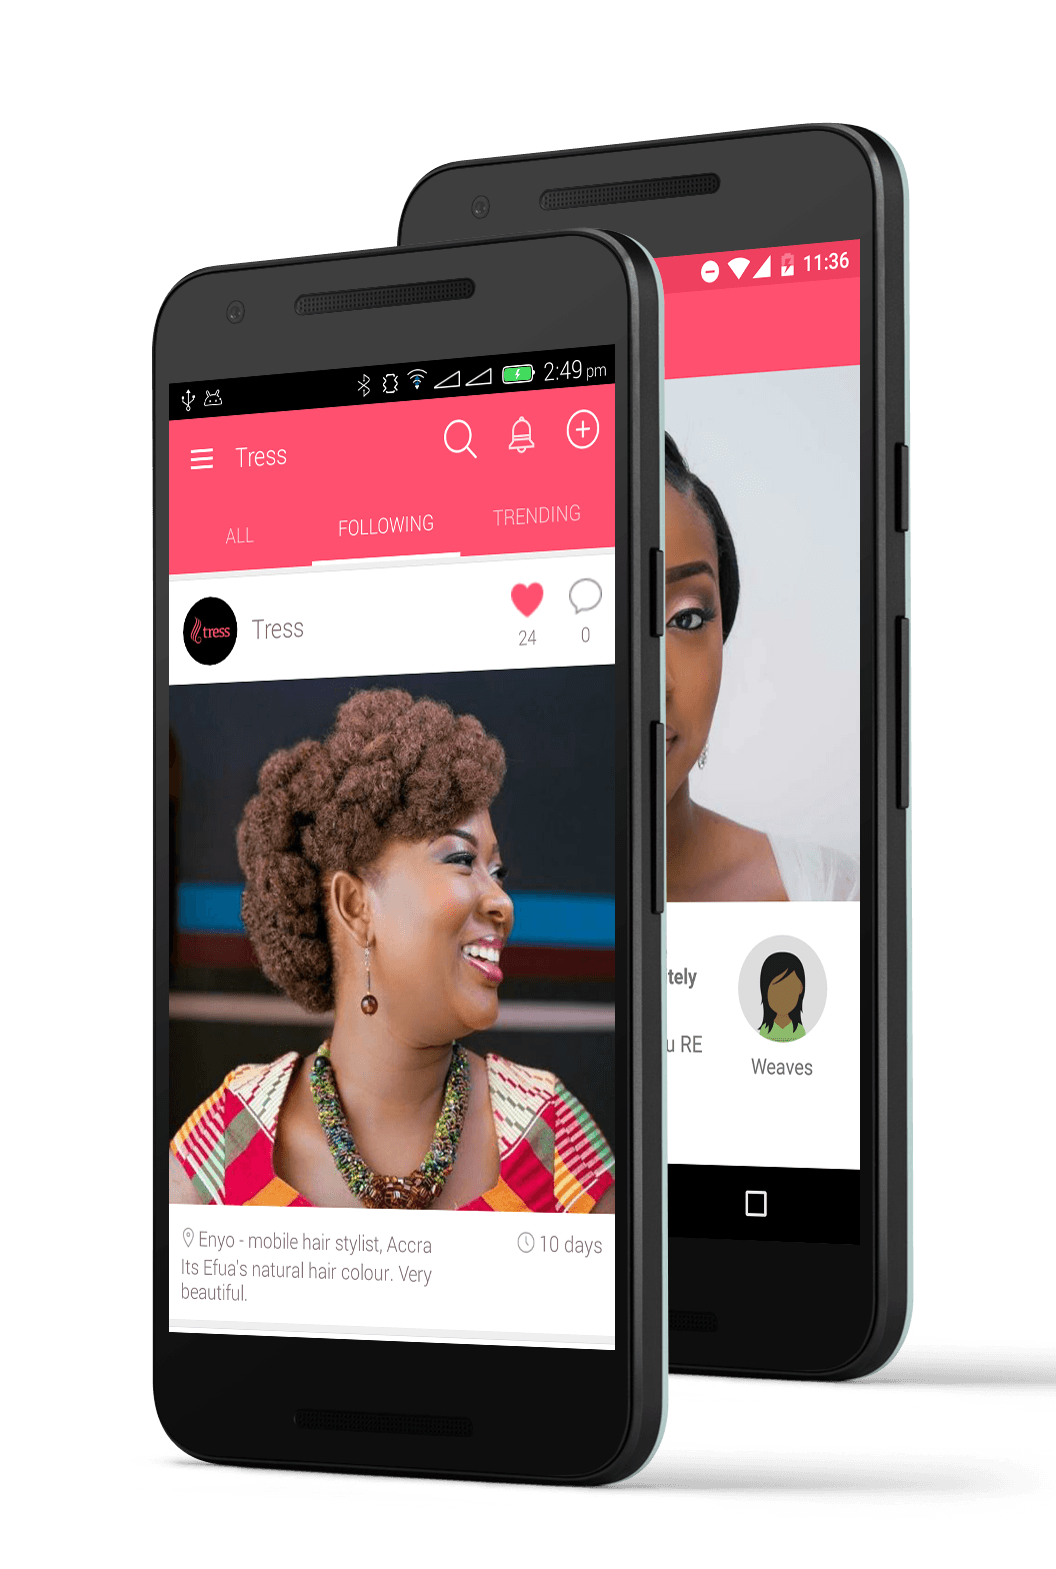 This New App Is Going To Be The Facebook Of Black Hair